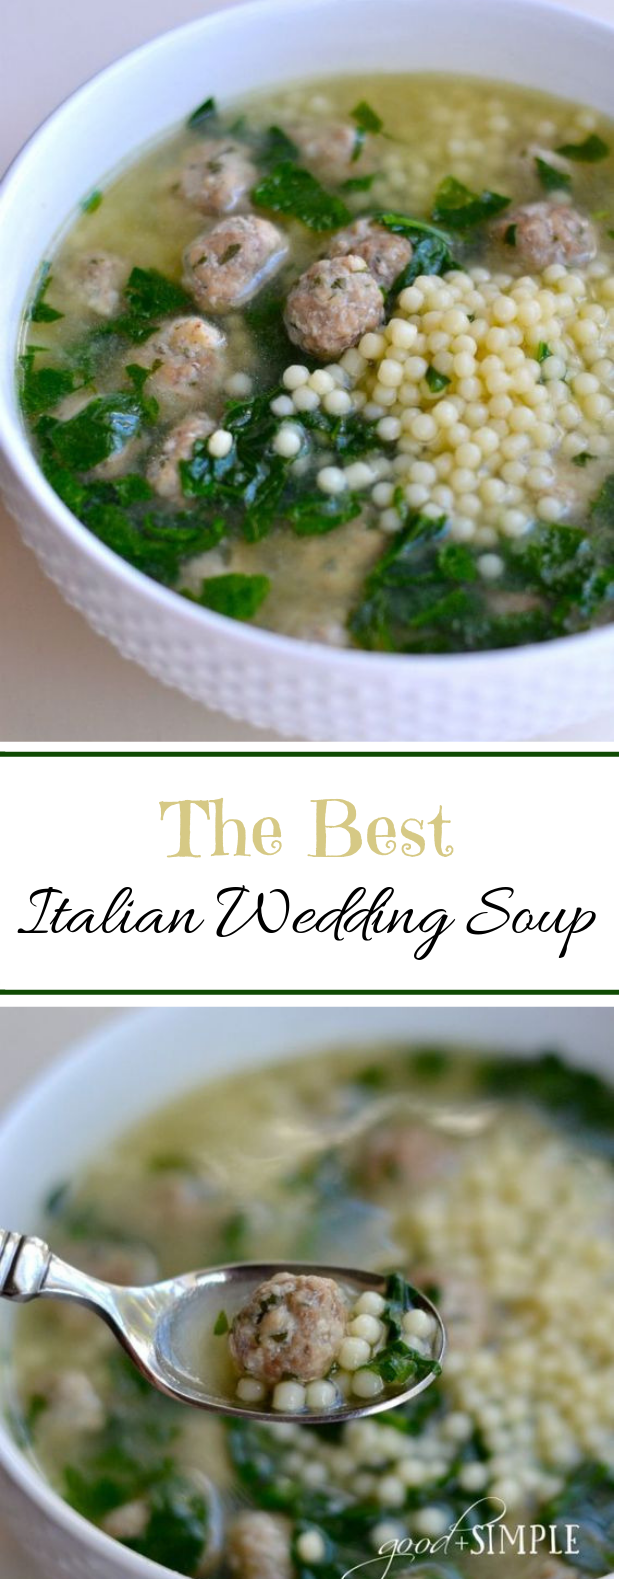 Best Italian Wedding Soup #winter #soup